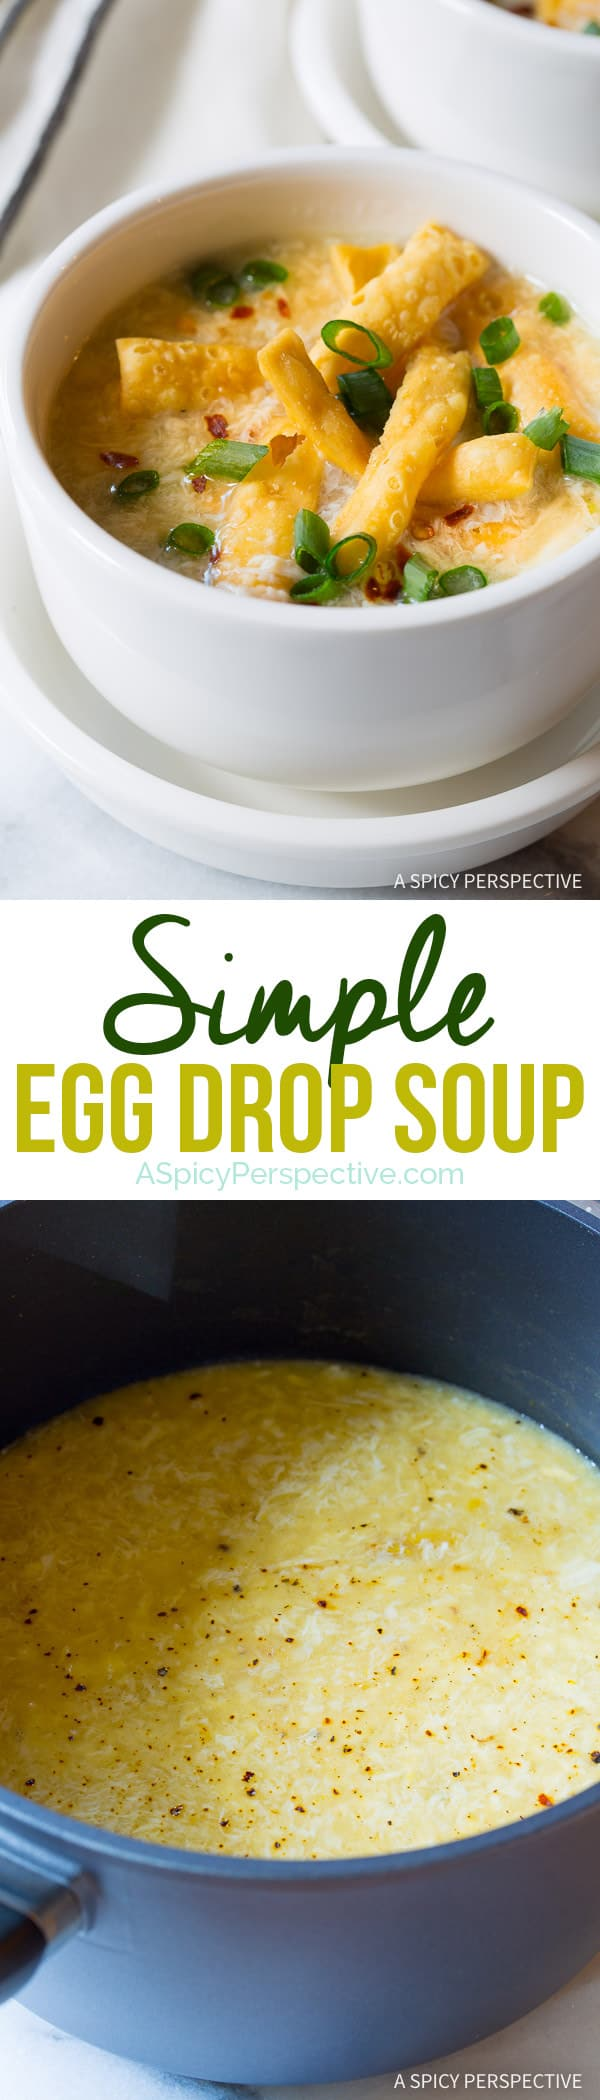 Today's Simple Egg Drop Soup Recipe is a light and healthy meal ...